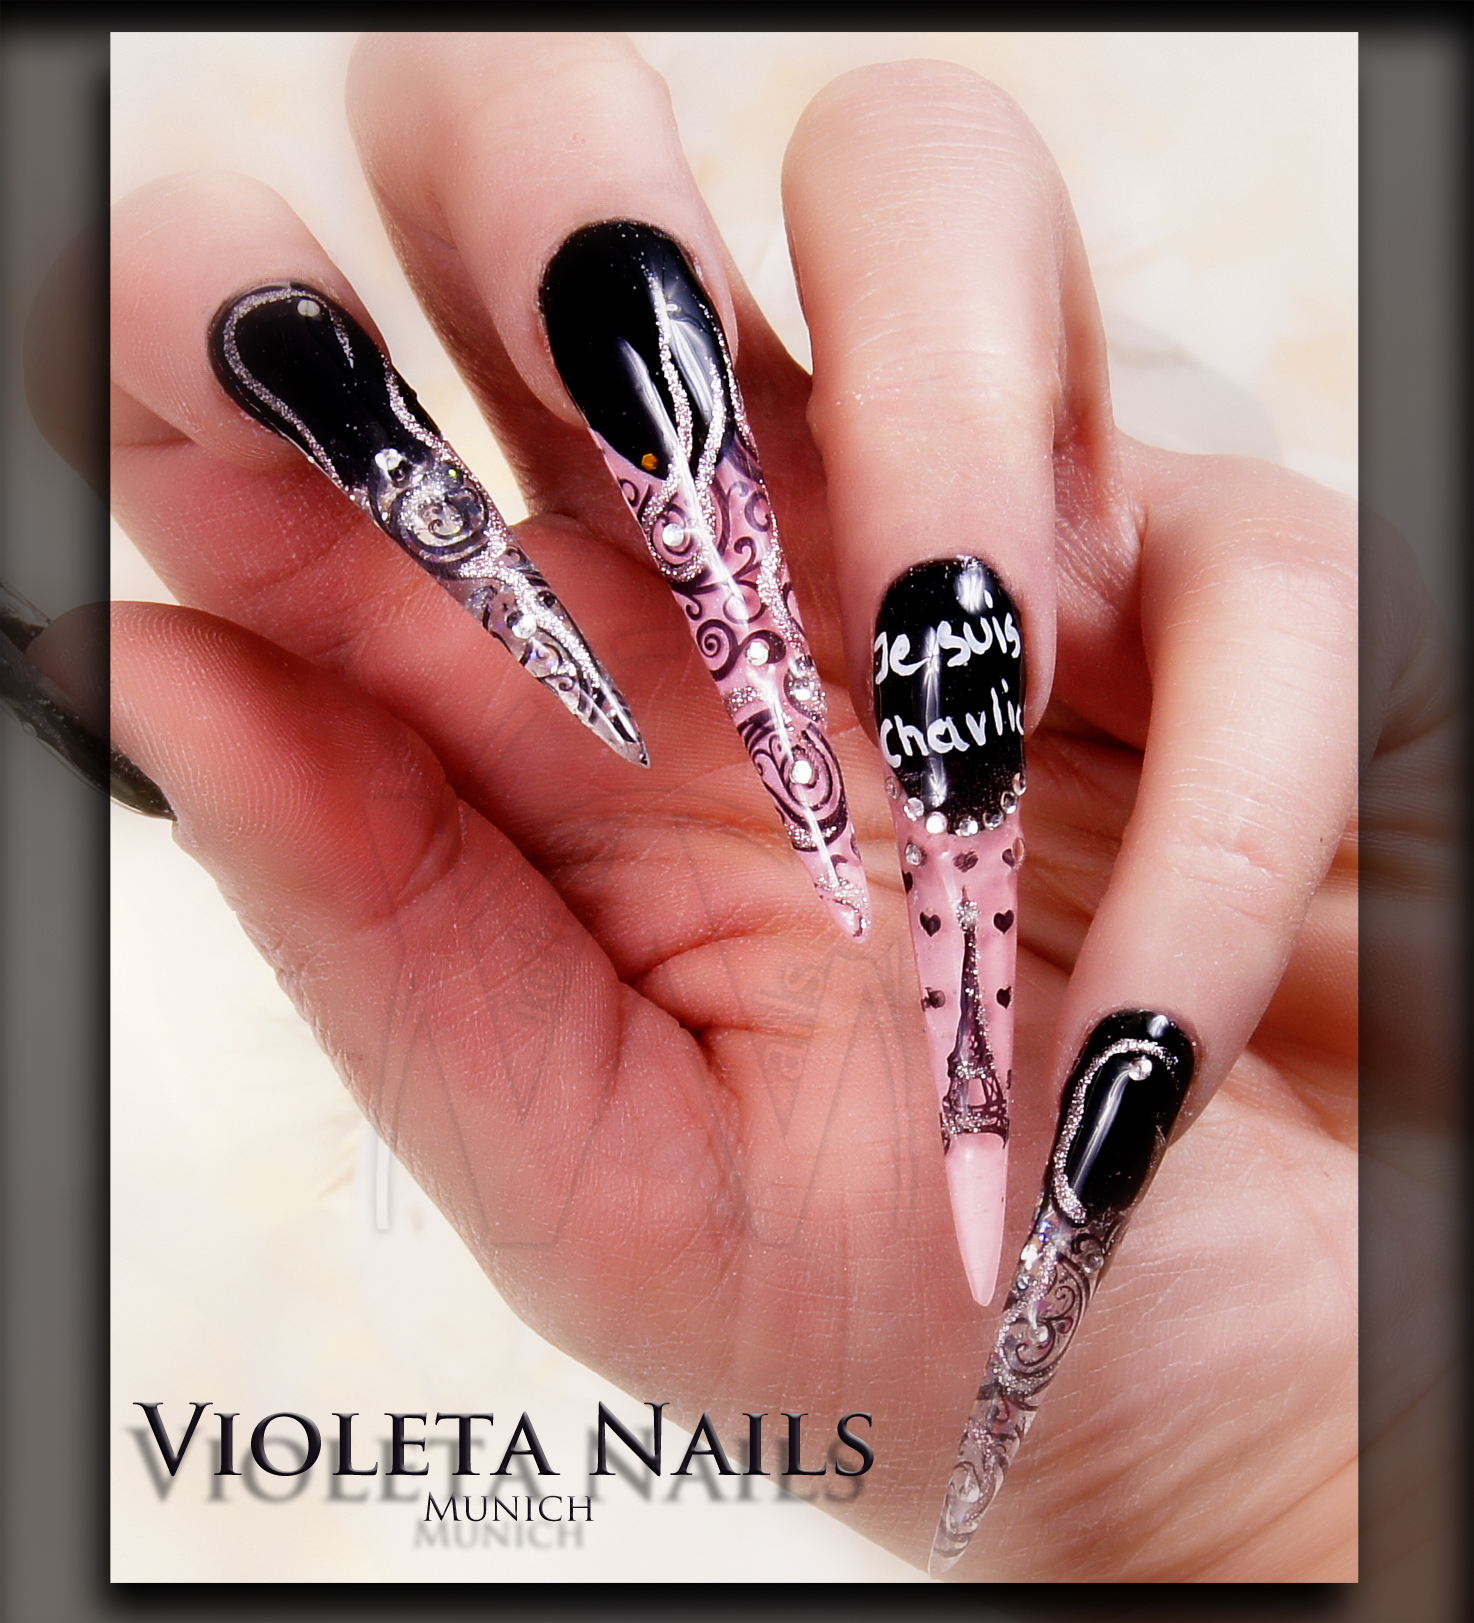 Stiletto nails acrylic and gel nail designs top 10 these stiletto nail designs by violeta nails not only stunning but also adorable prinsesfo Images